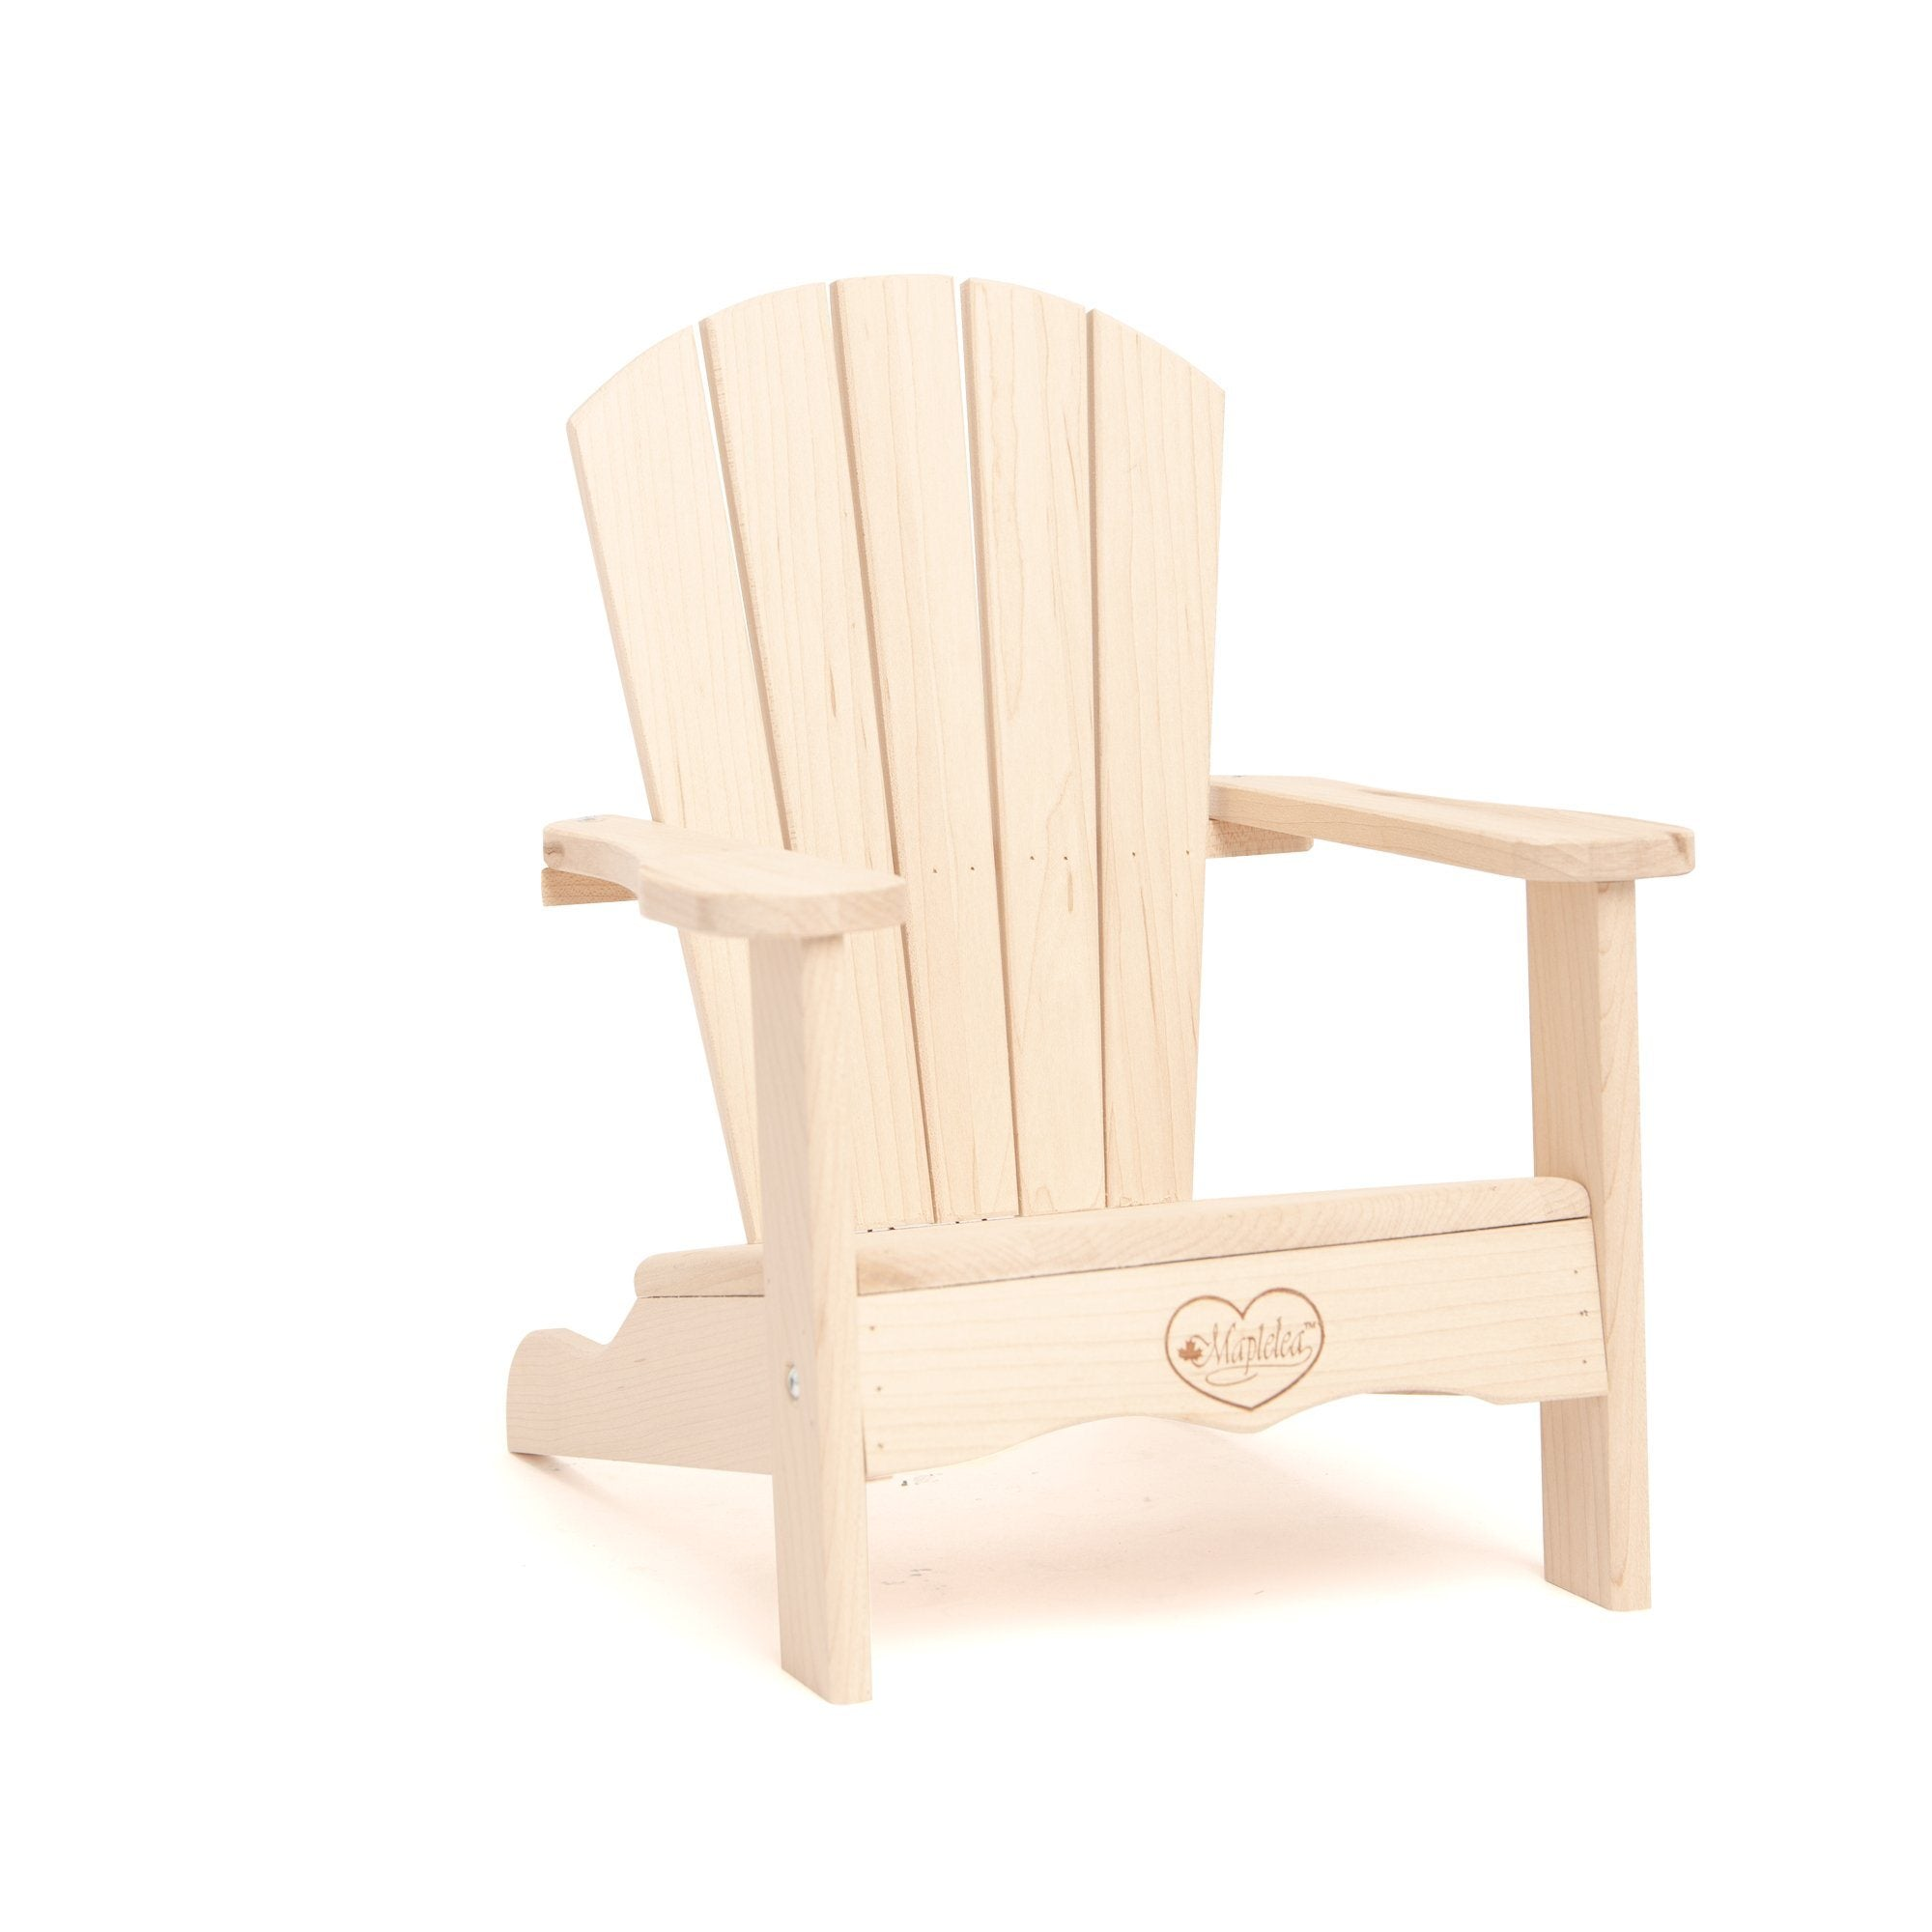 Maplelea Muskoka Chair